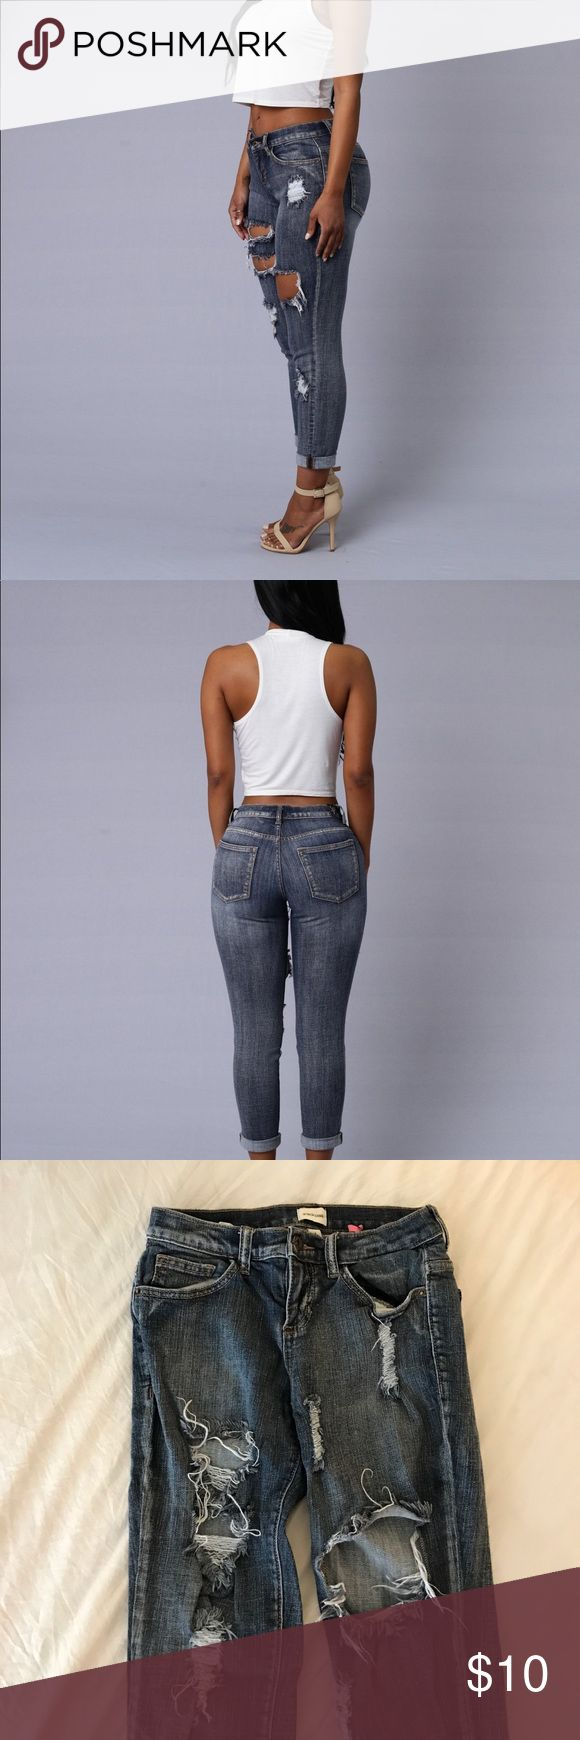 Fashion Nova Drew Boyfriend Jeans 🔹Low rise jeans  🔹Good used condition 🔹Getting rid of these because I don't like how they fit me  🔹Size 1, check out their website for any sizing questions  🔹Very cute jeans perfect for fall🍂 🔹Comment below if you have any questions :) Fashion Nova Jeans Boyfriend